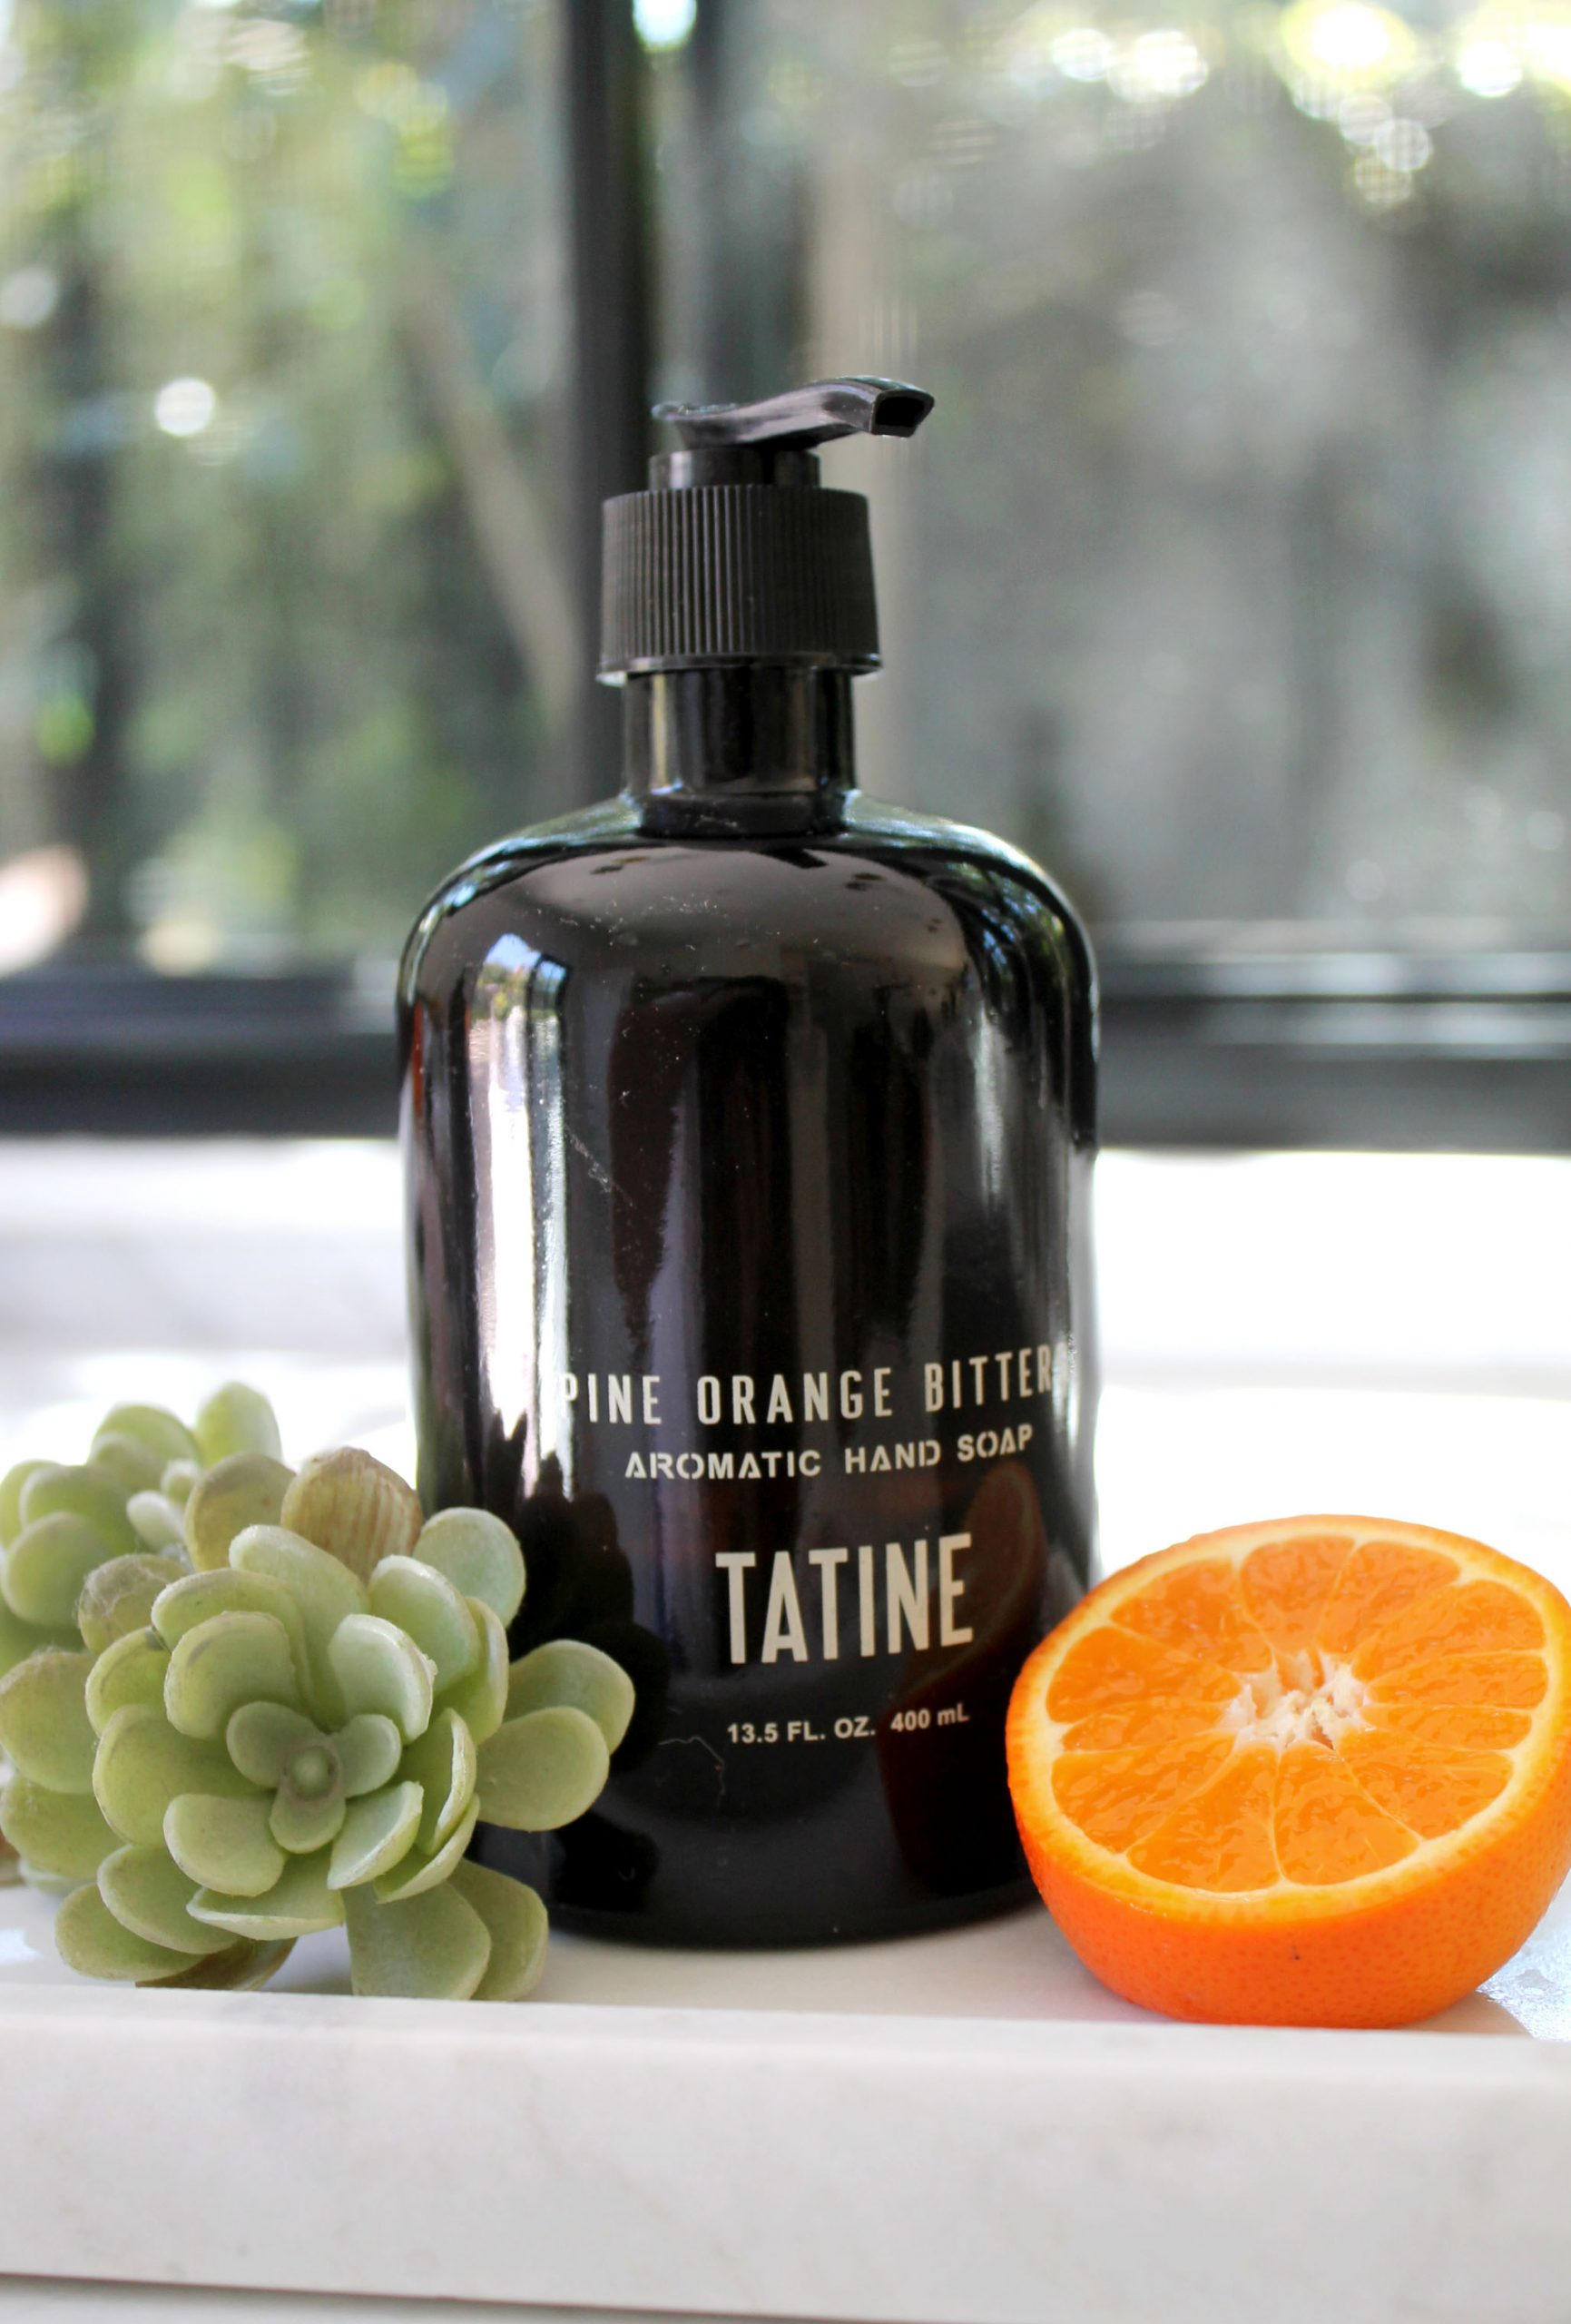 Pine Orange Bitters Hand Soap And Lotion